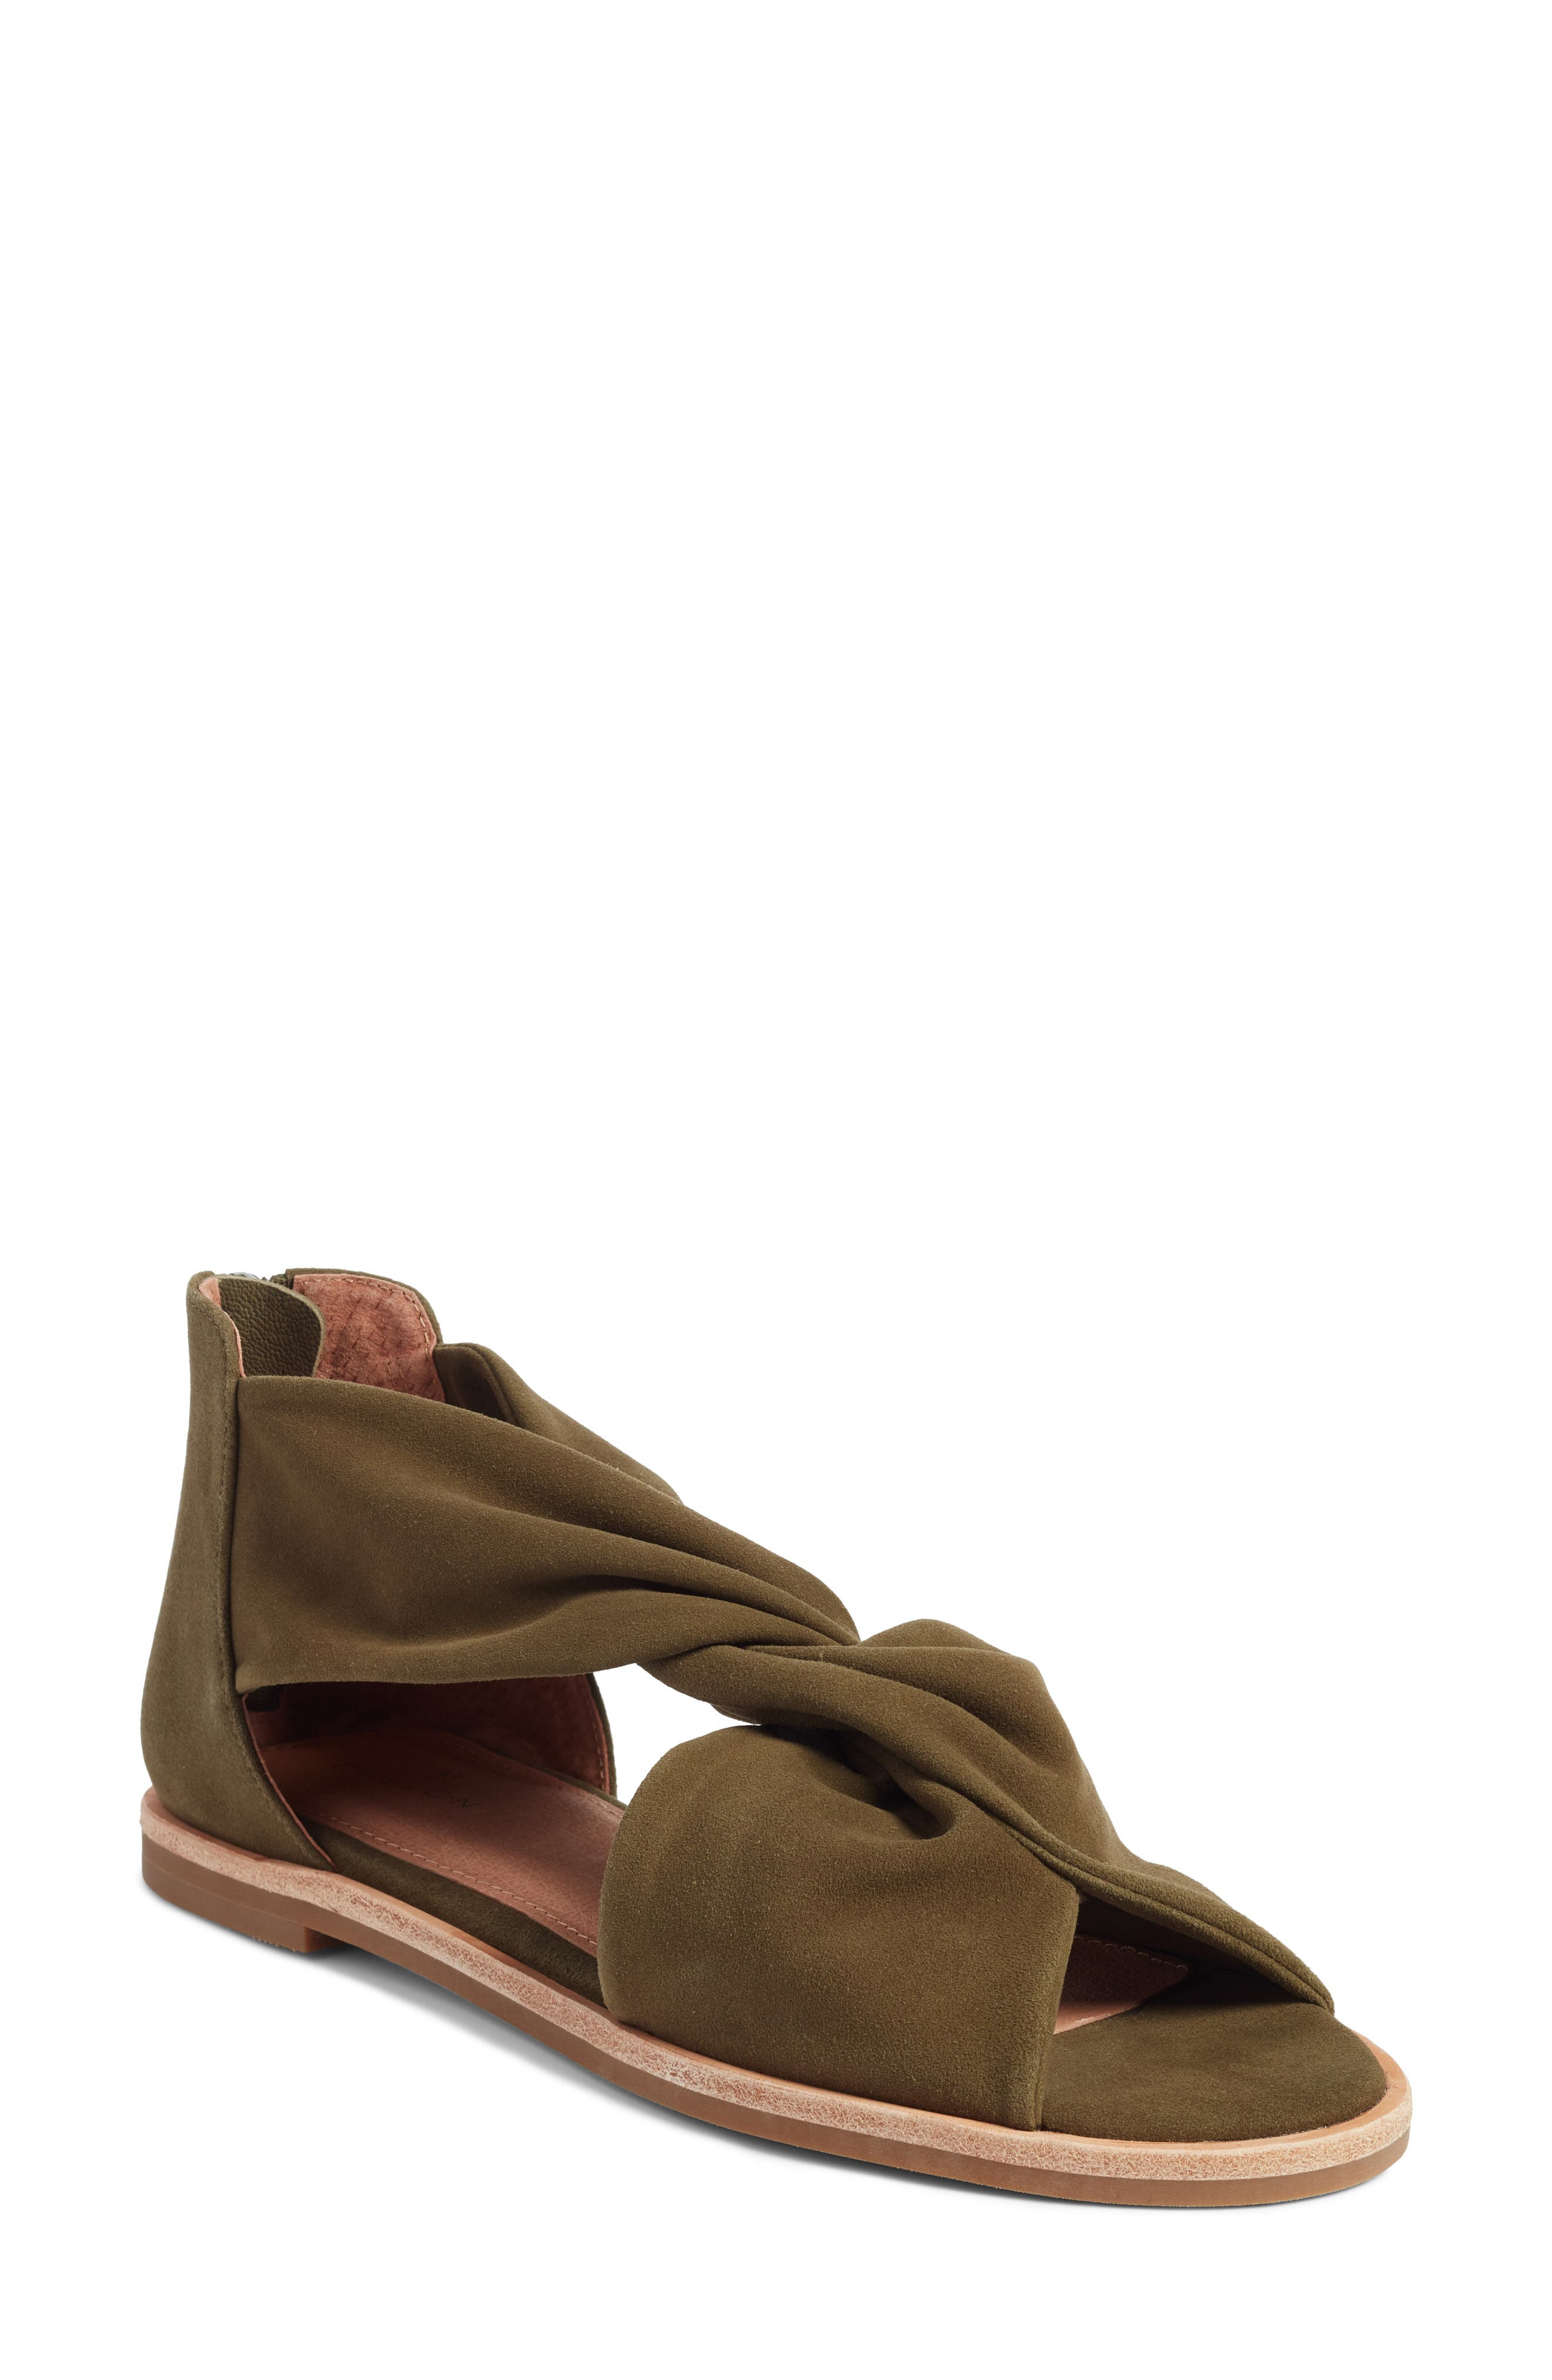 Maxwell Sandal,                         Main,                         color, Olive Suede